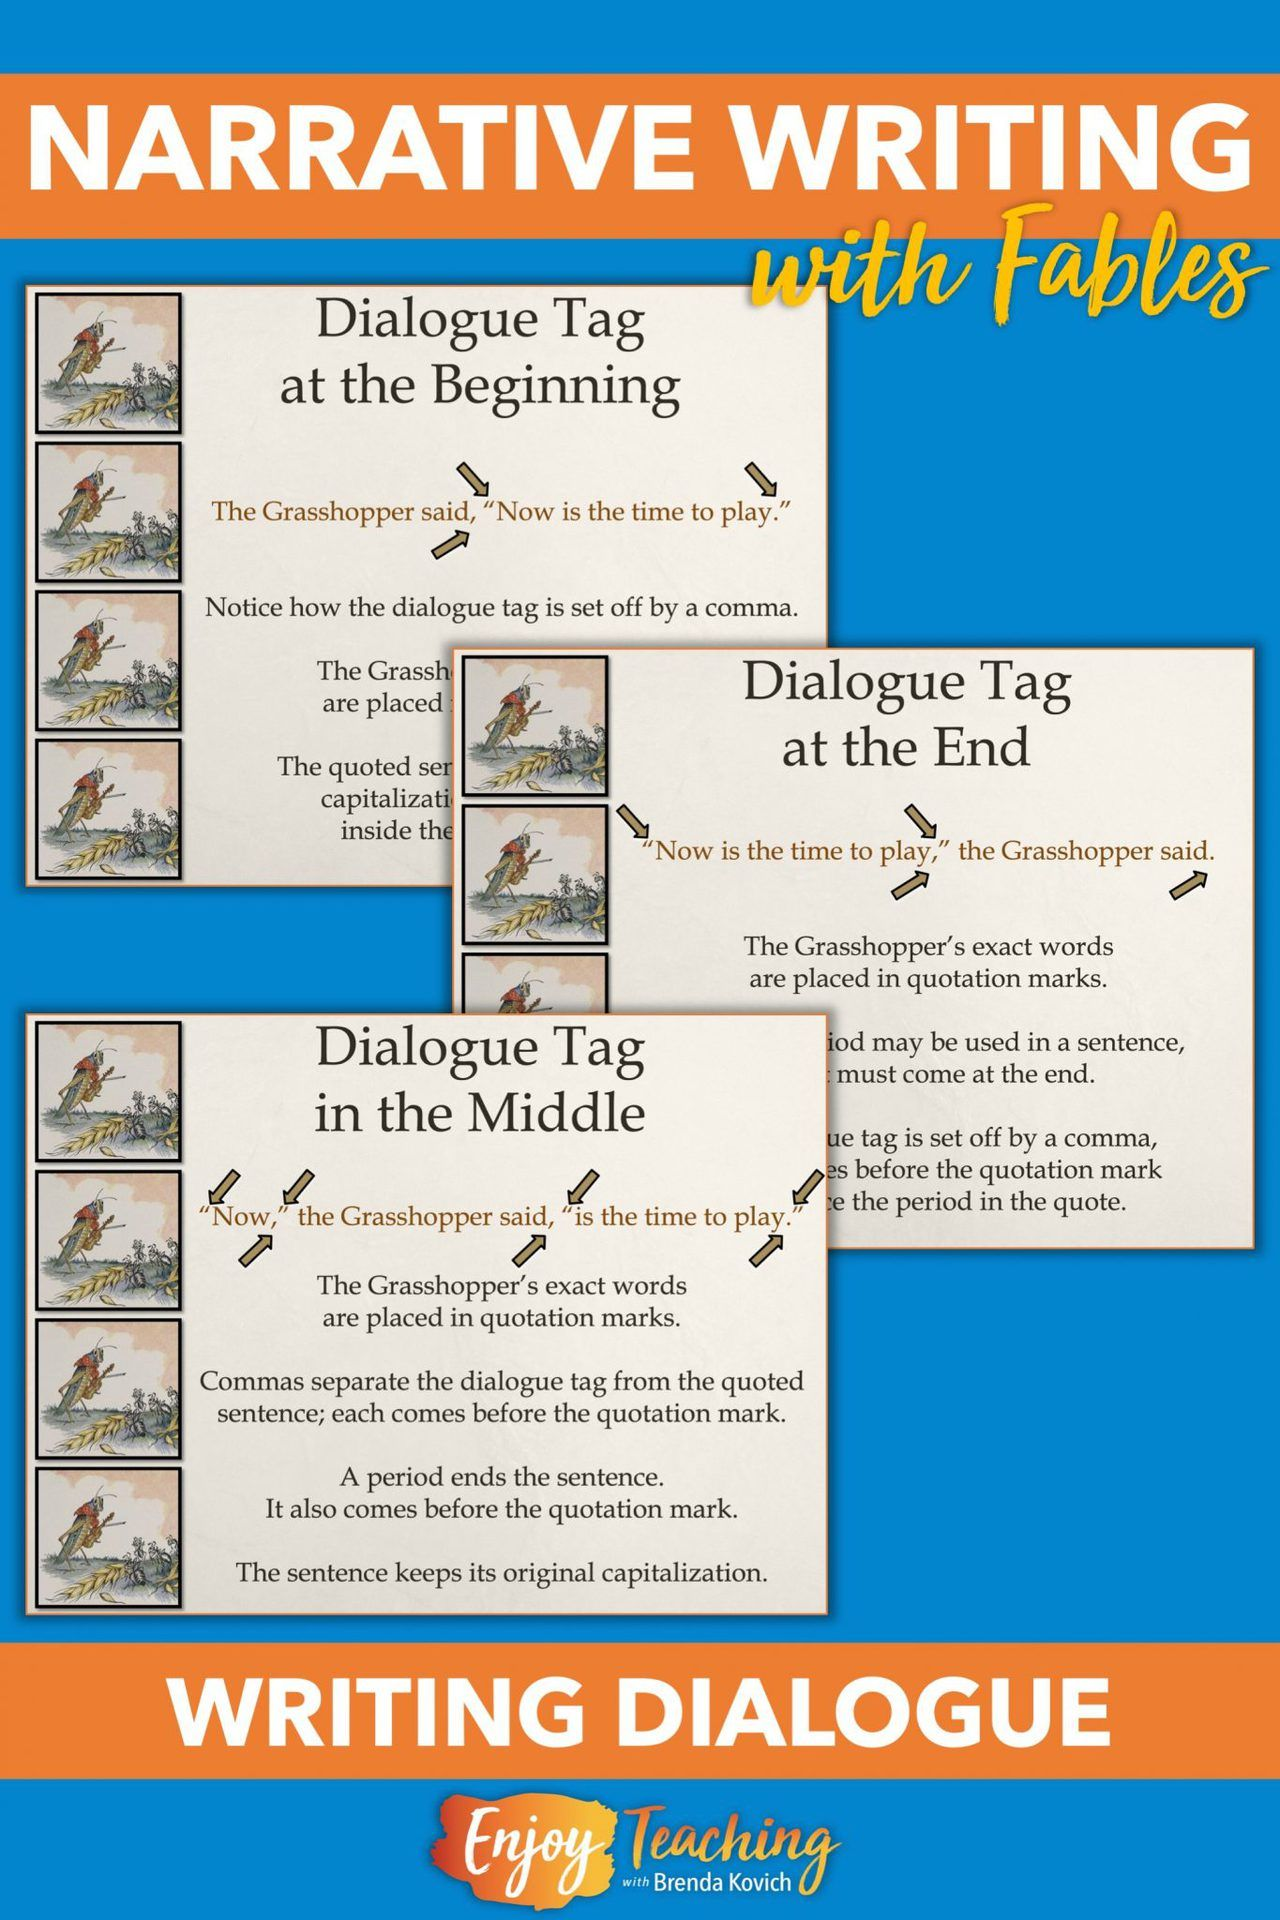 Fables first beginning narrative writing with short